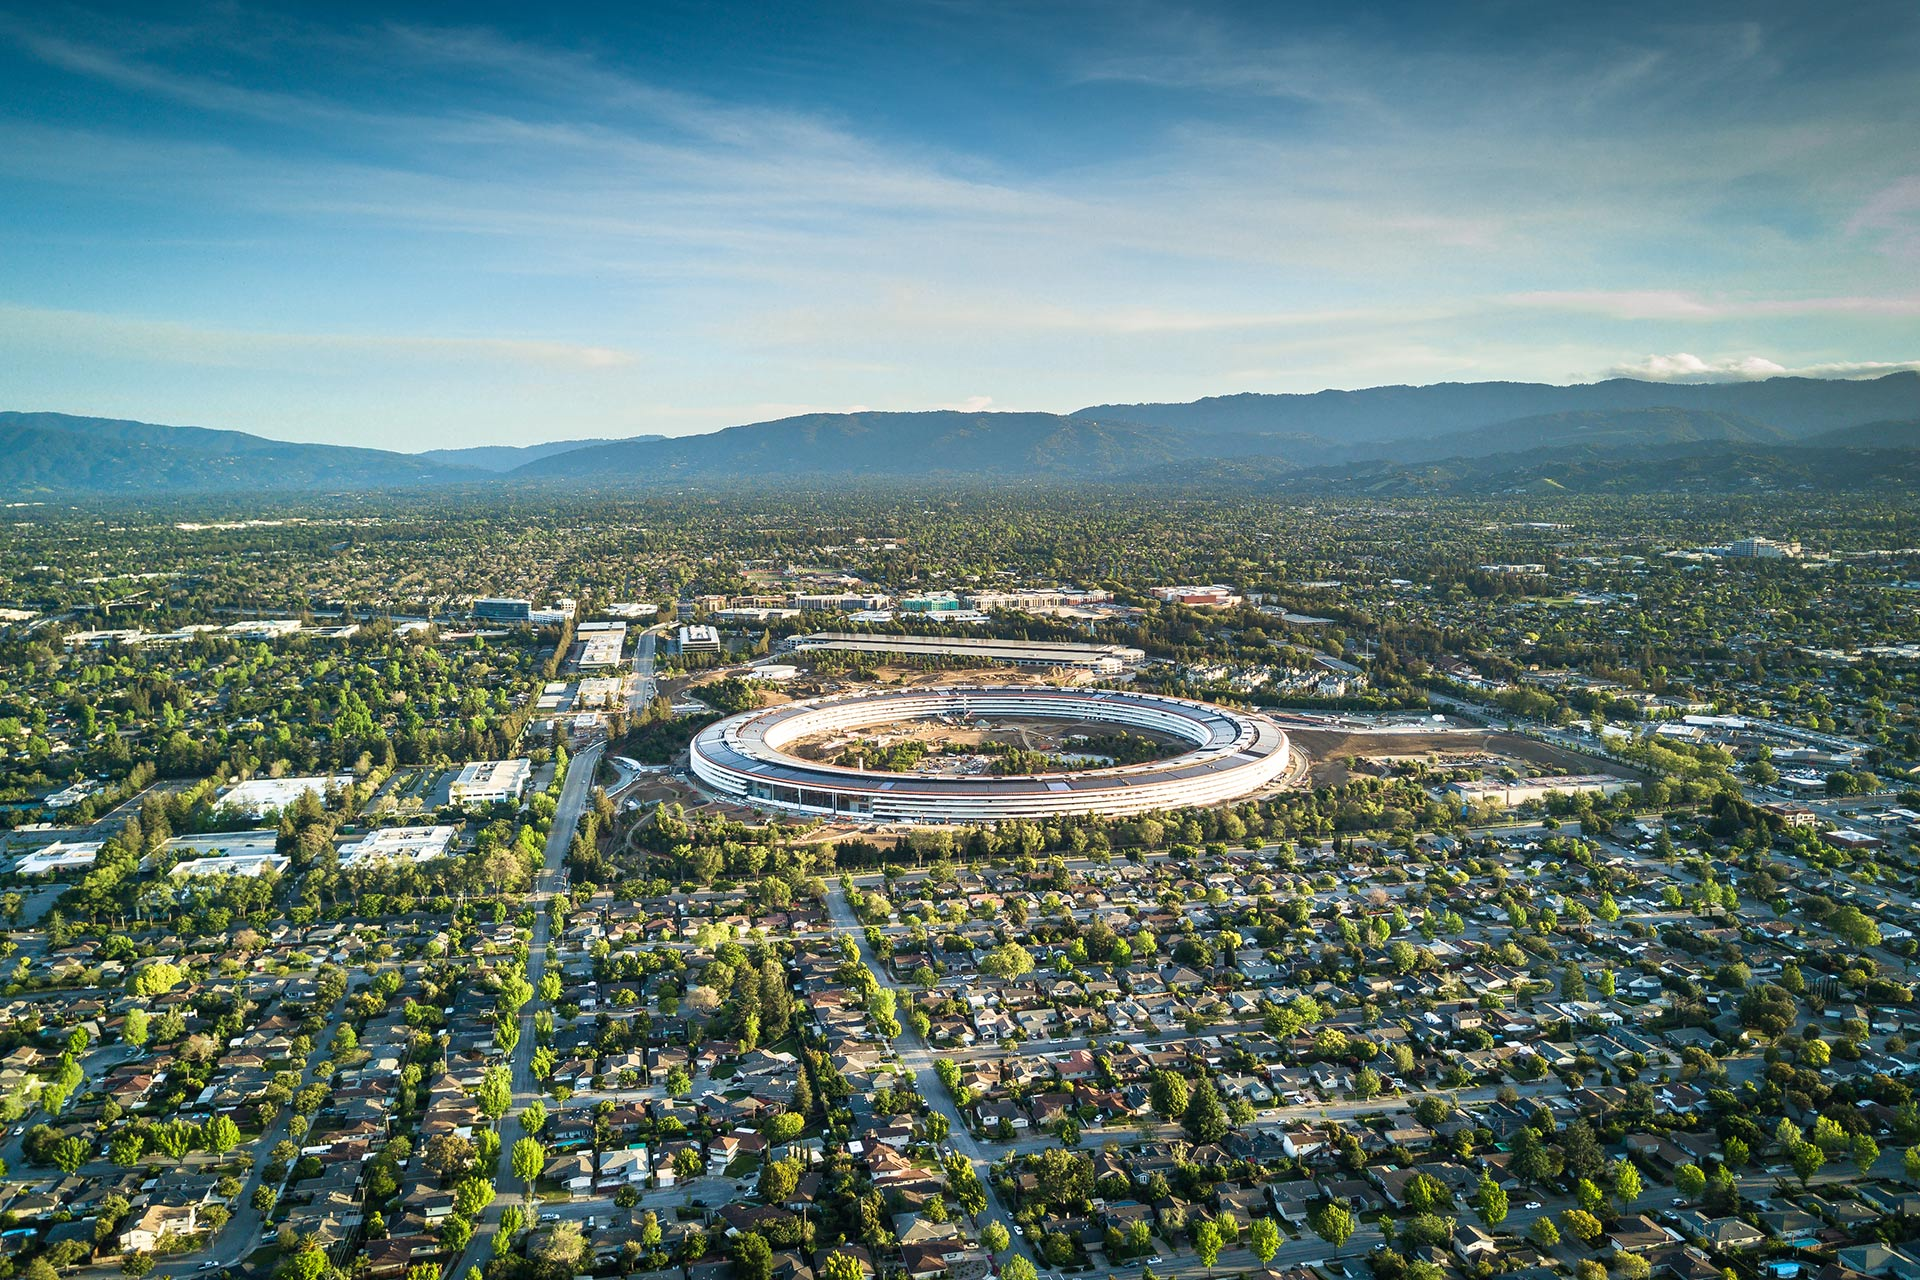 Apple's campus in Cupertino, California